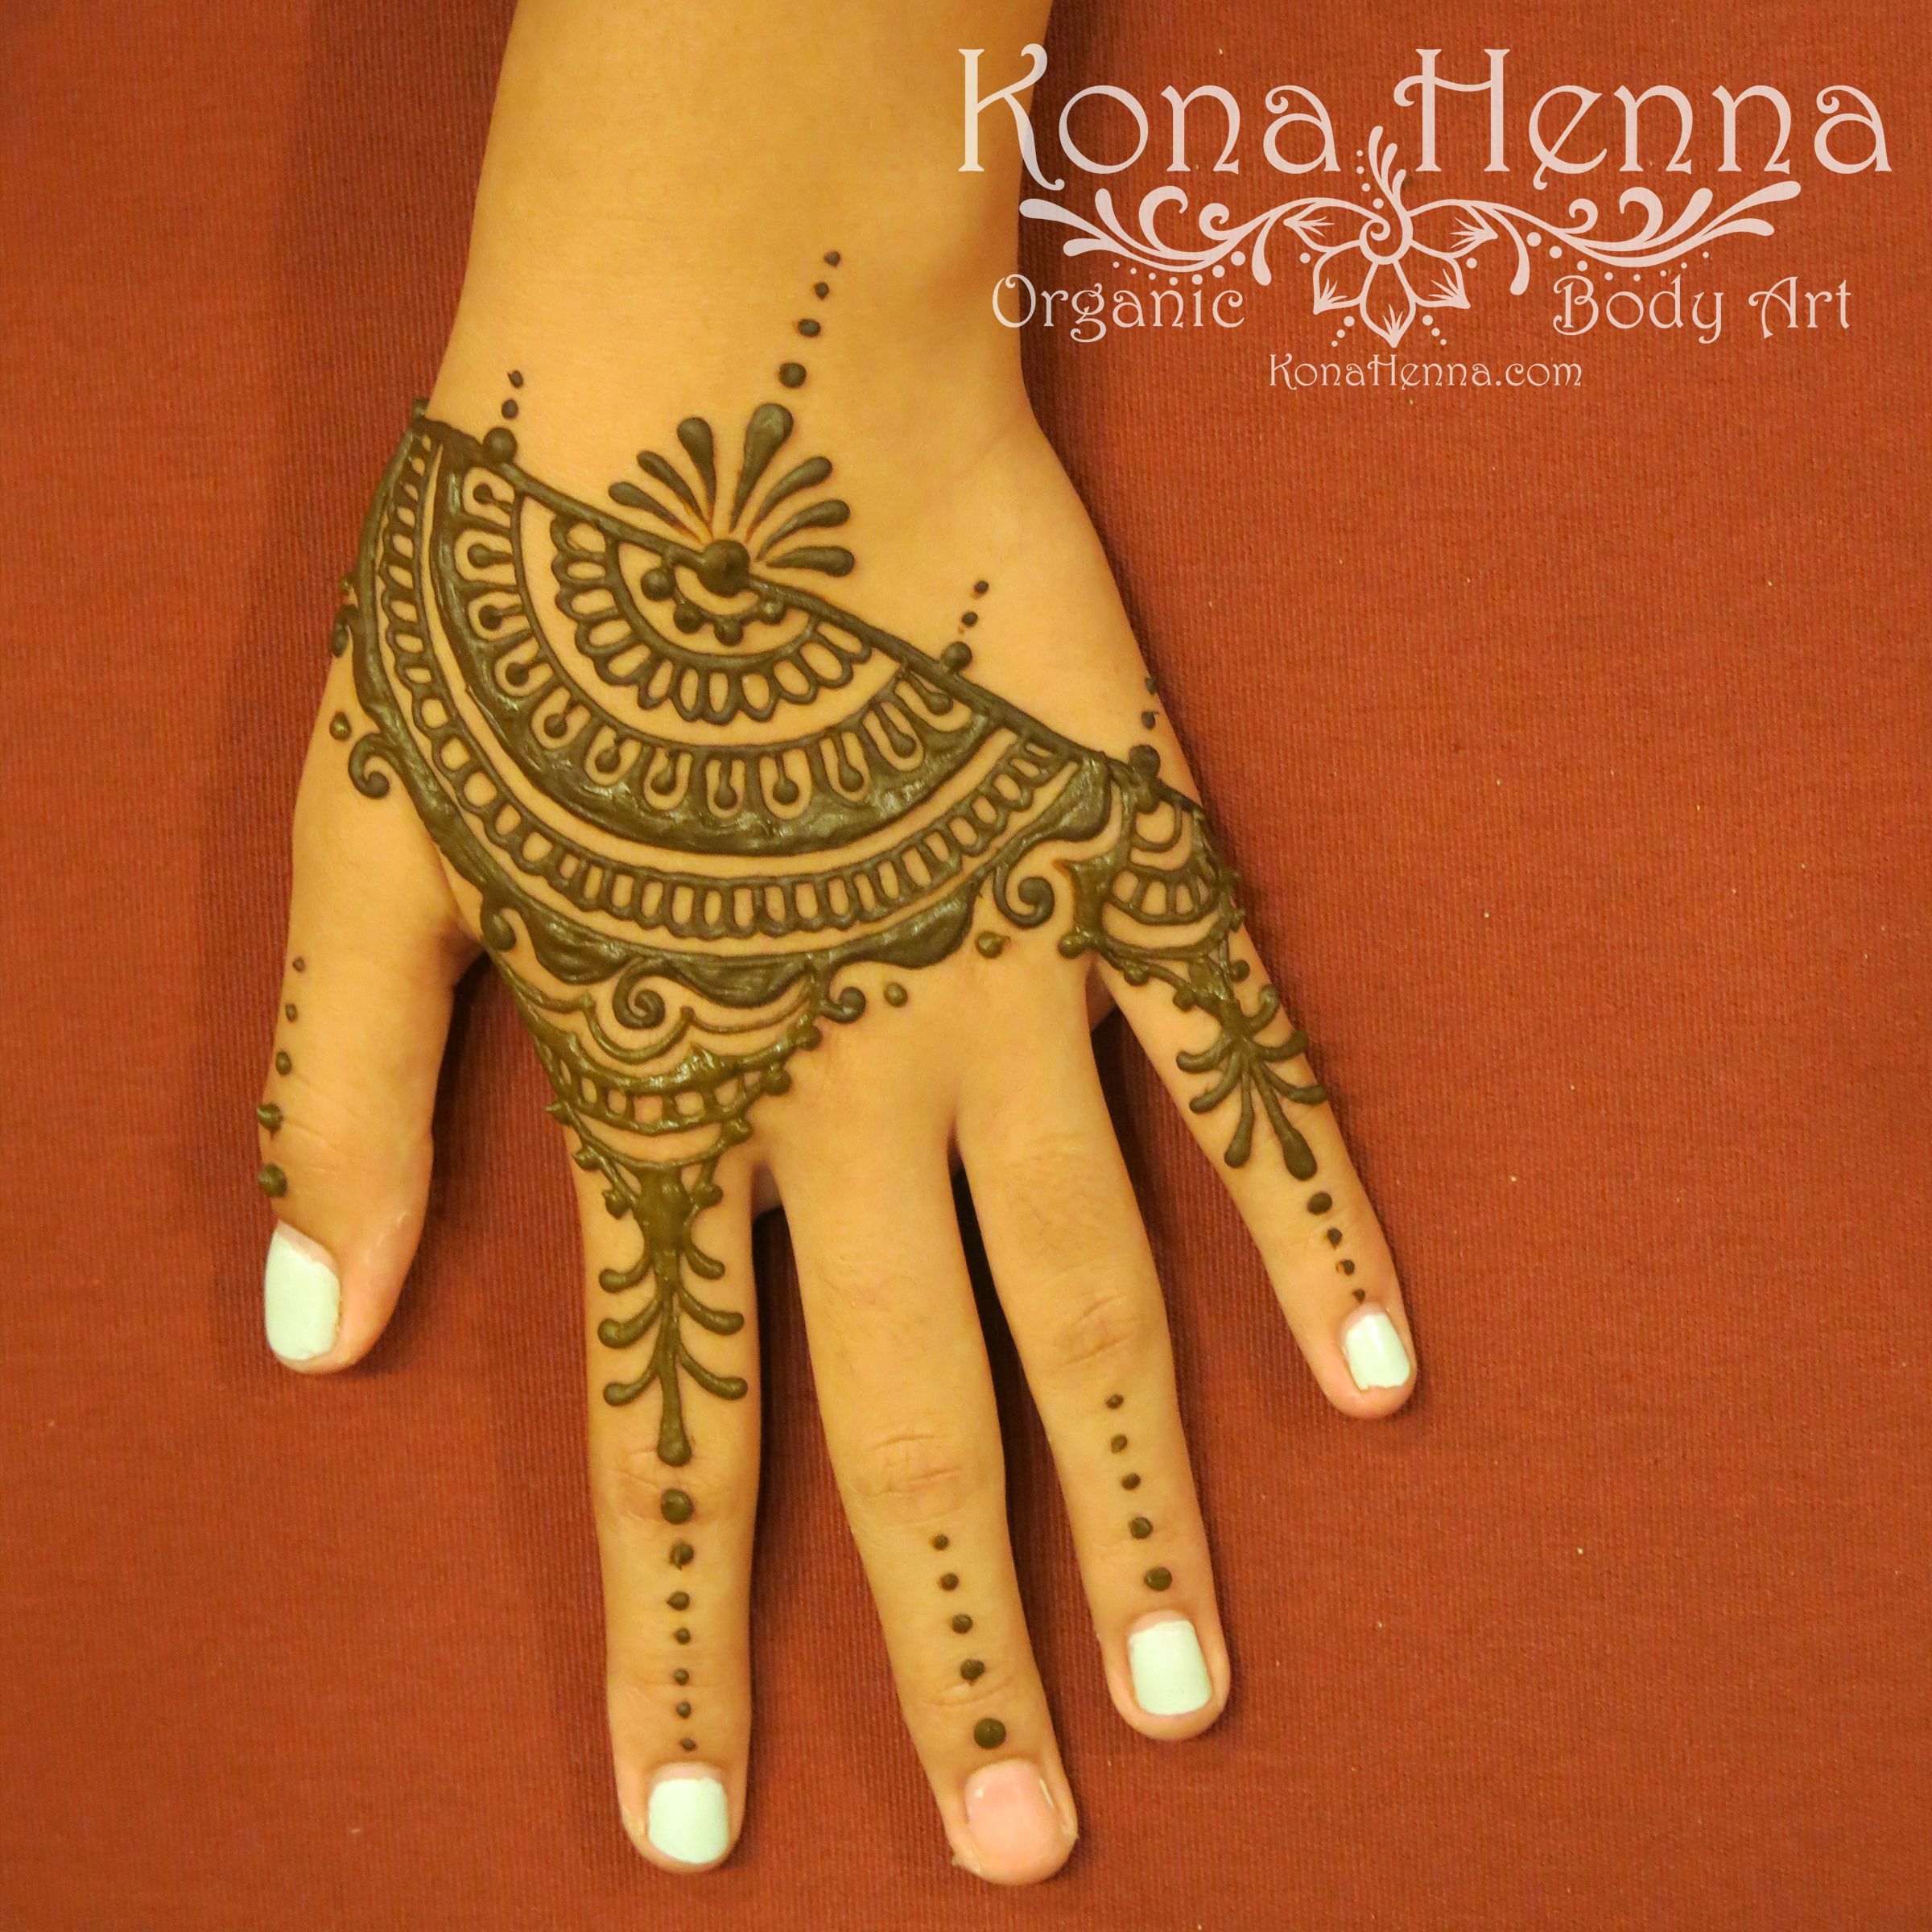 organic henna products professional henna studio kona henna hands. Black Bedroom Furniture Sets. Home Design Ideas